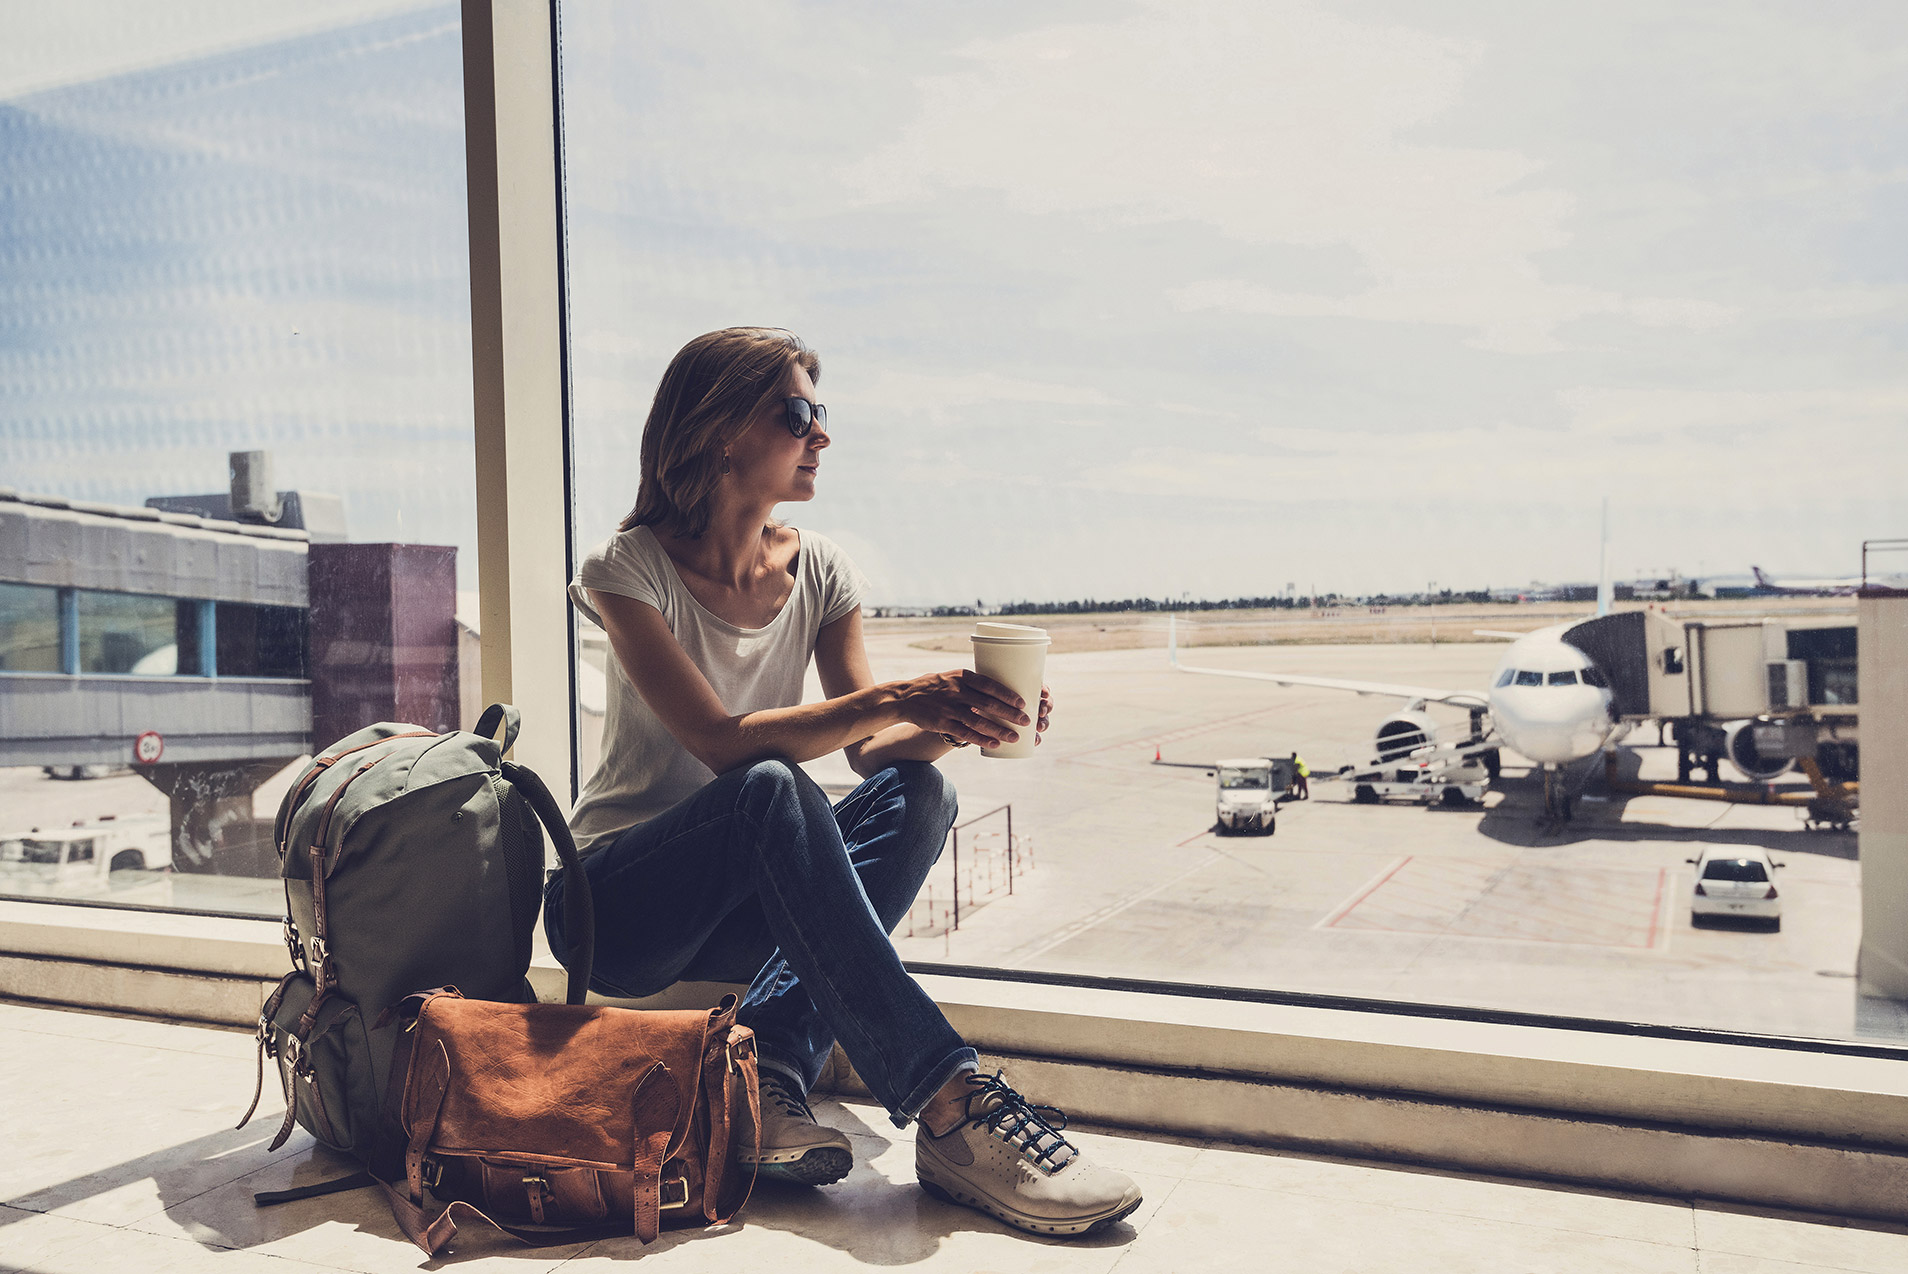 Foreign business travel: expenses and allowances explained - Crunch - Picture of a woman waiting for a plane.